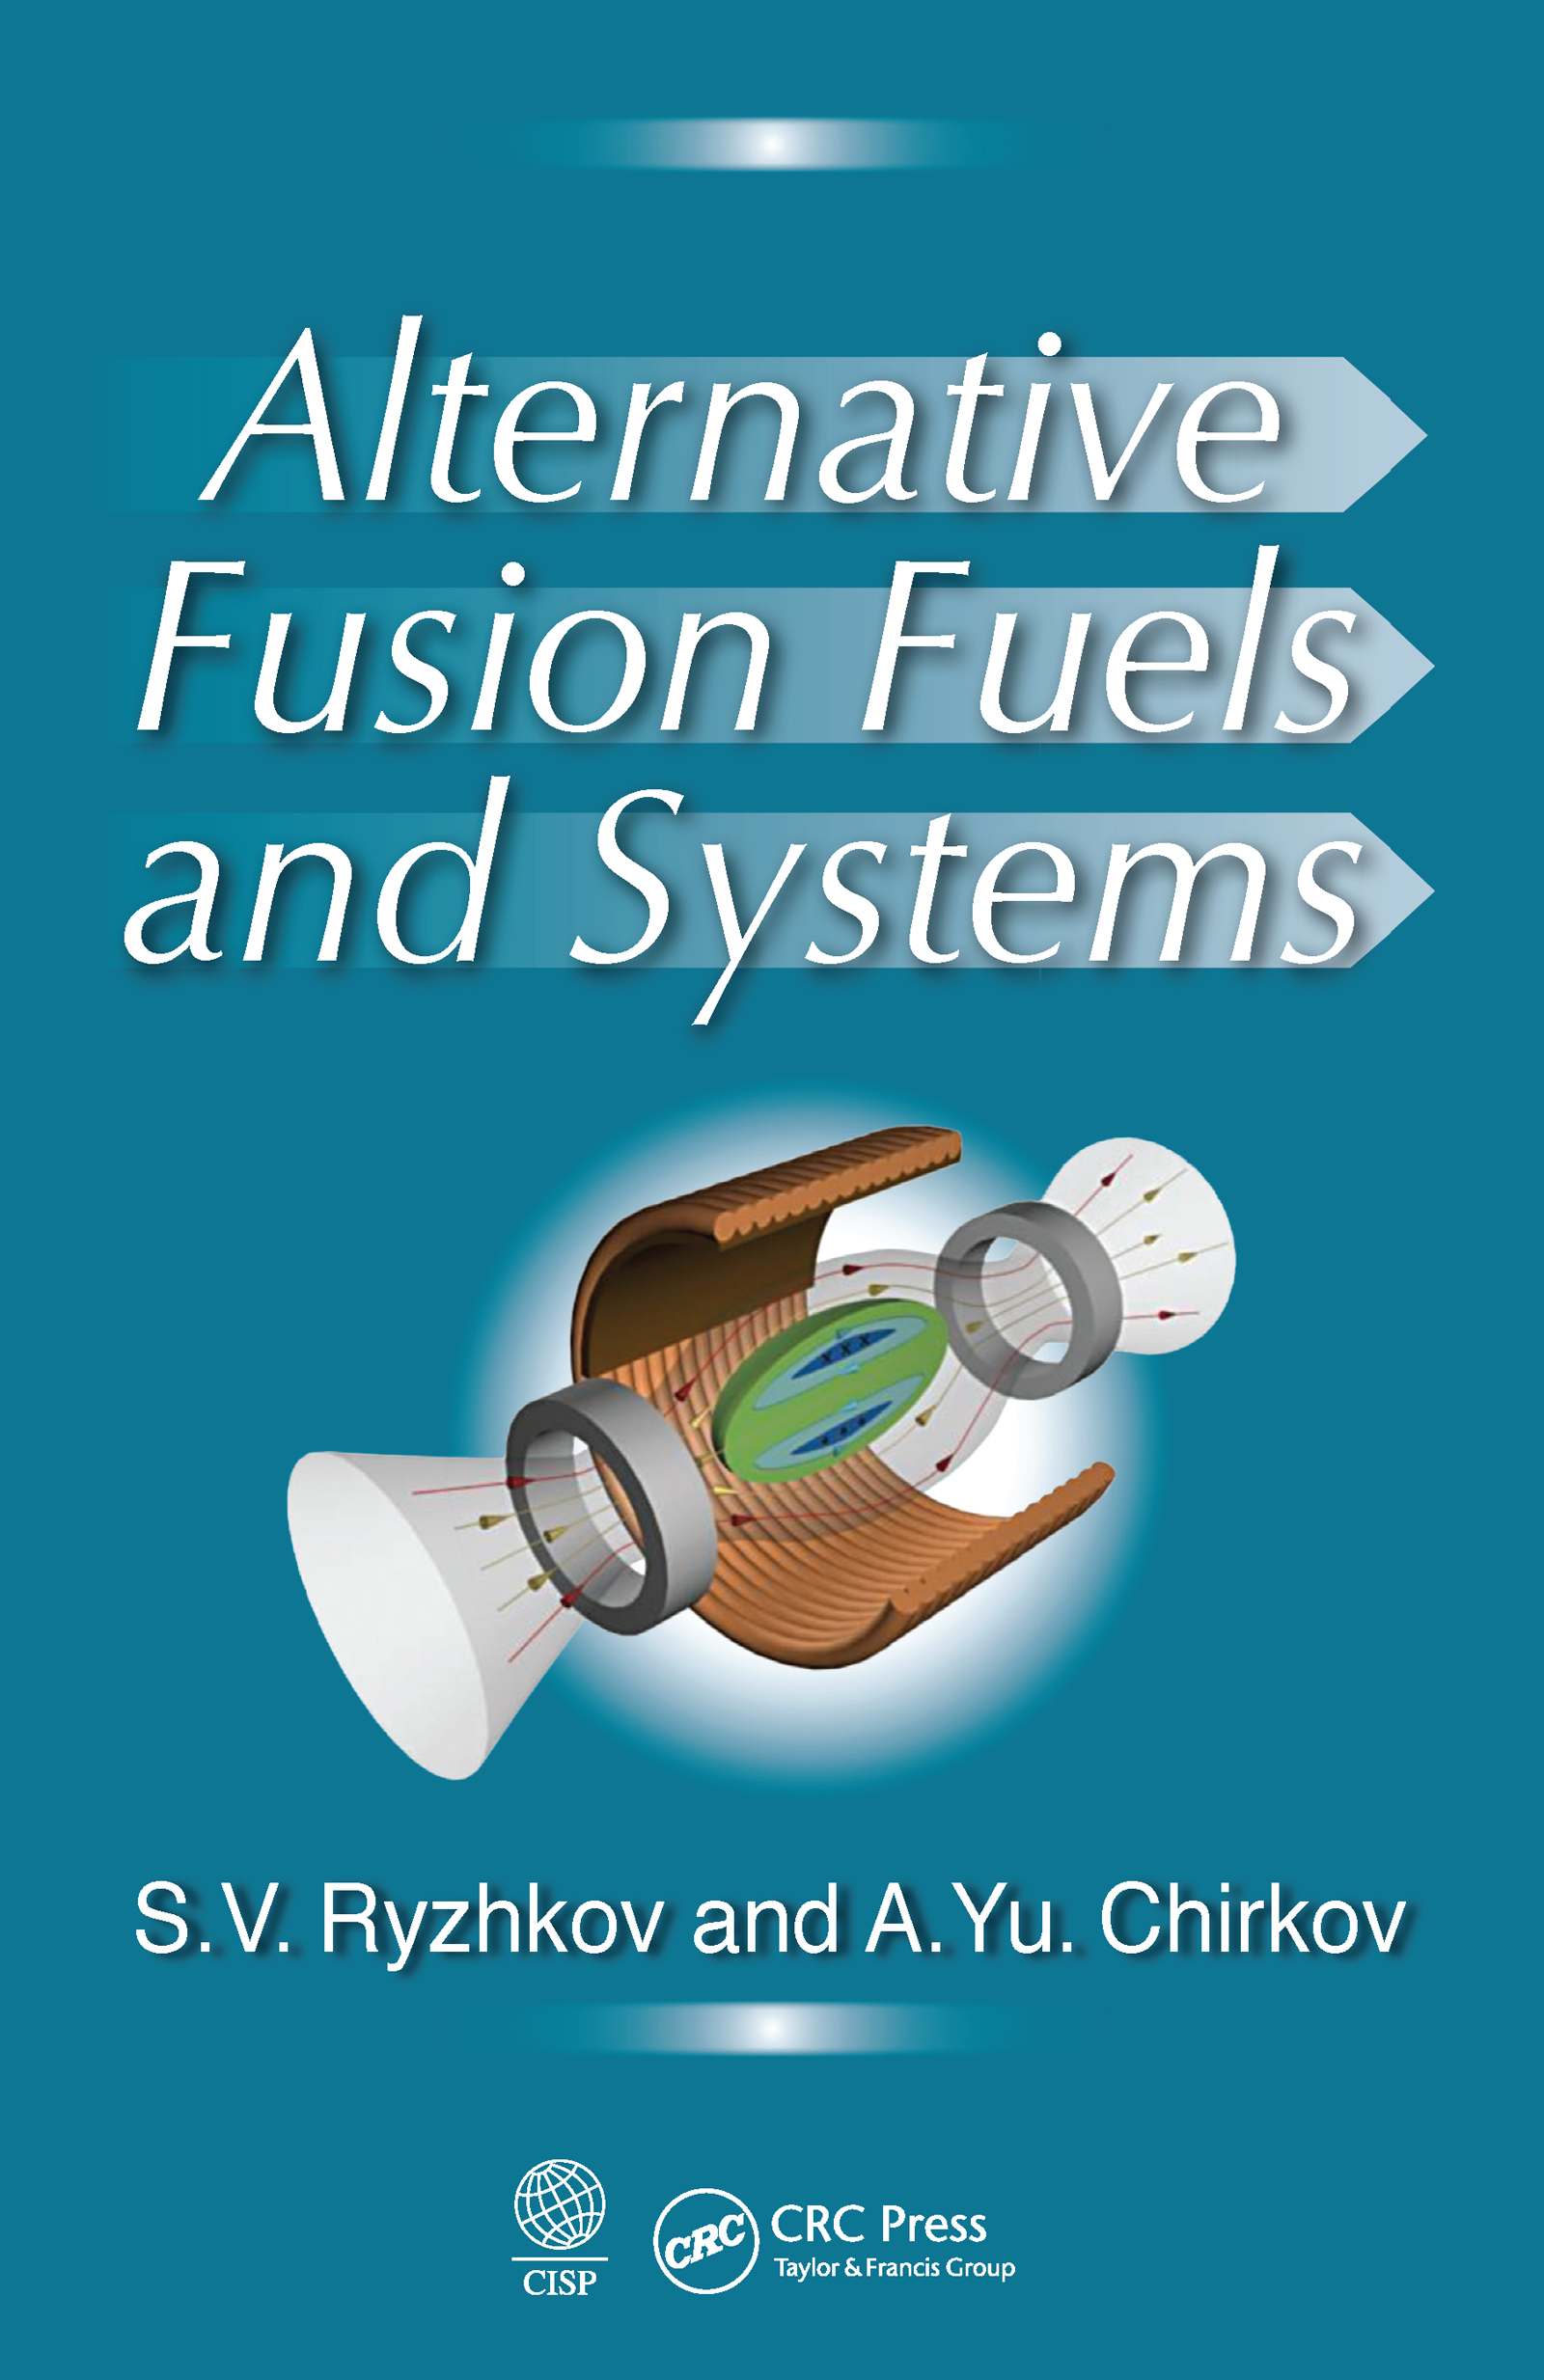 Alternative Fusion Fuels and Systems